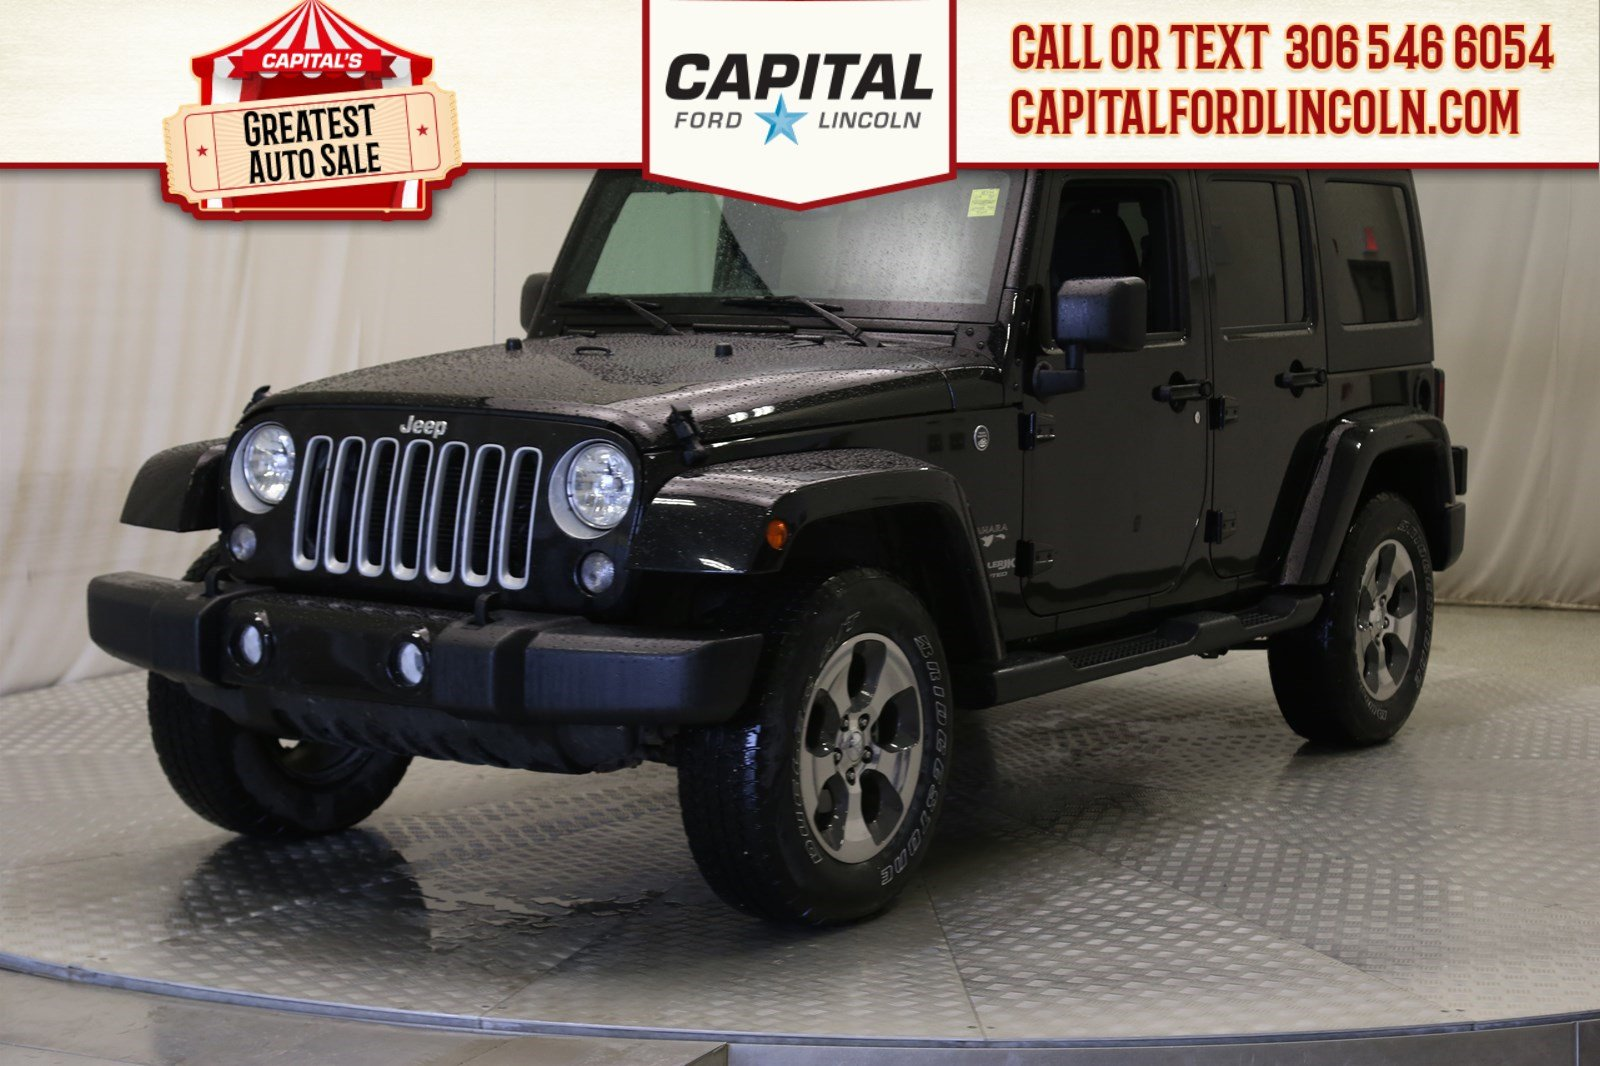 Pre-Owned 2018 Jeep Wrangler JK Unlimited Sahara Convertible